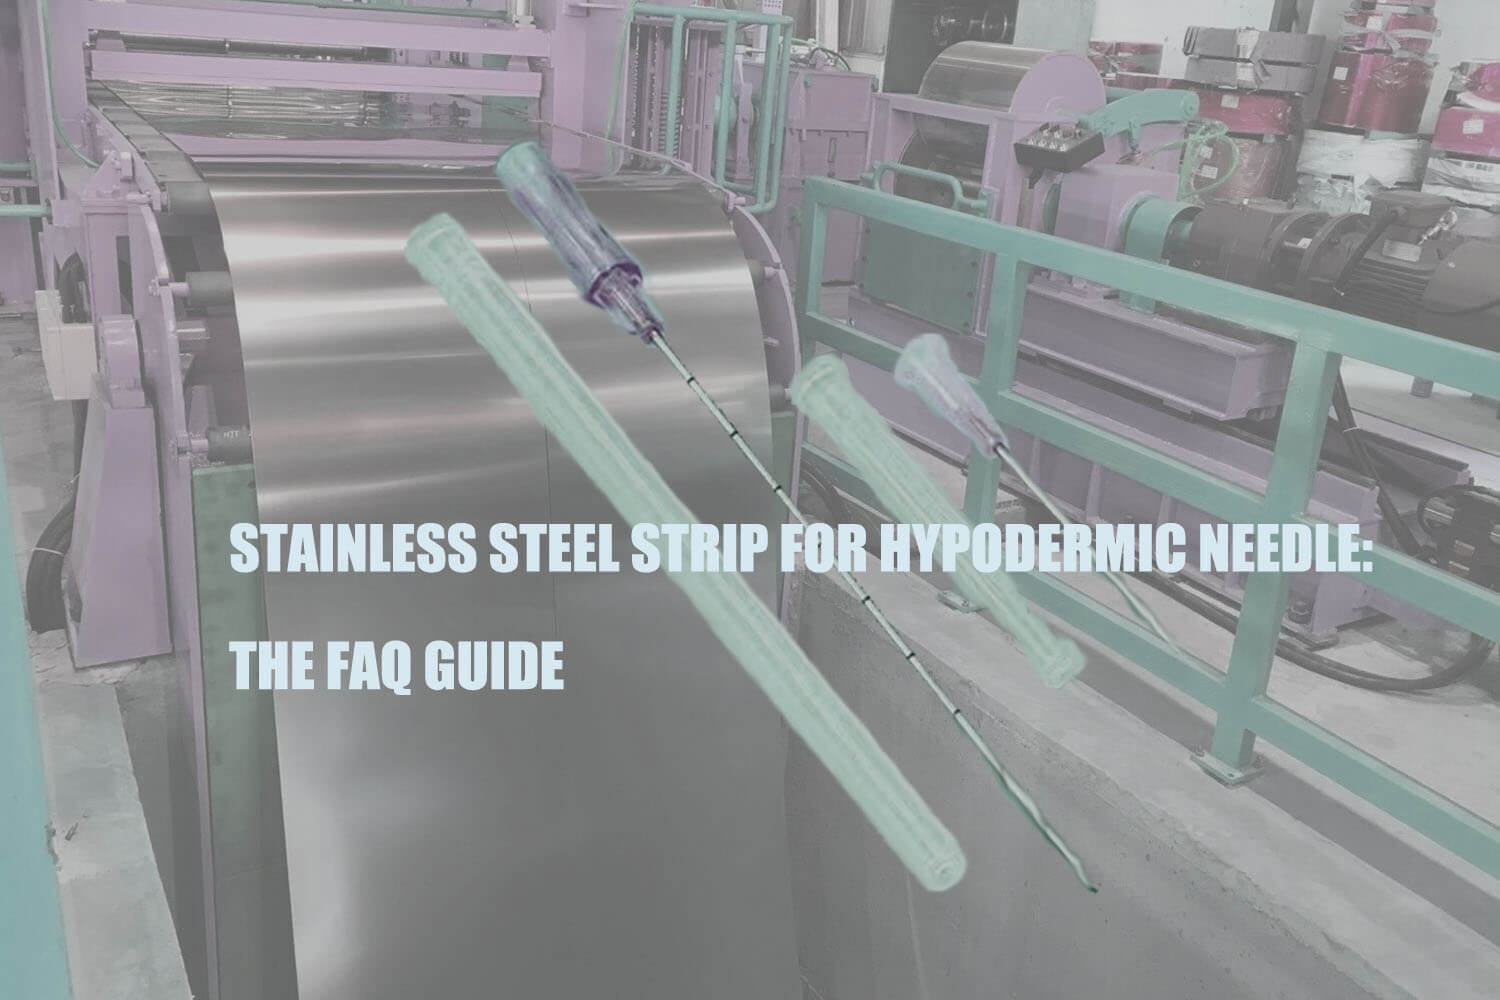 why-stainless-steel-strip-for-hypodermic-needle